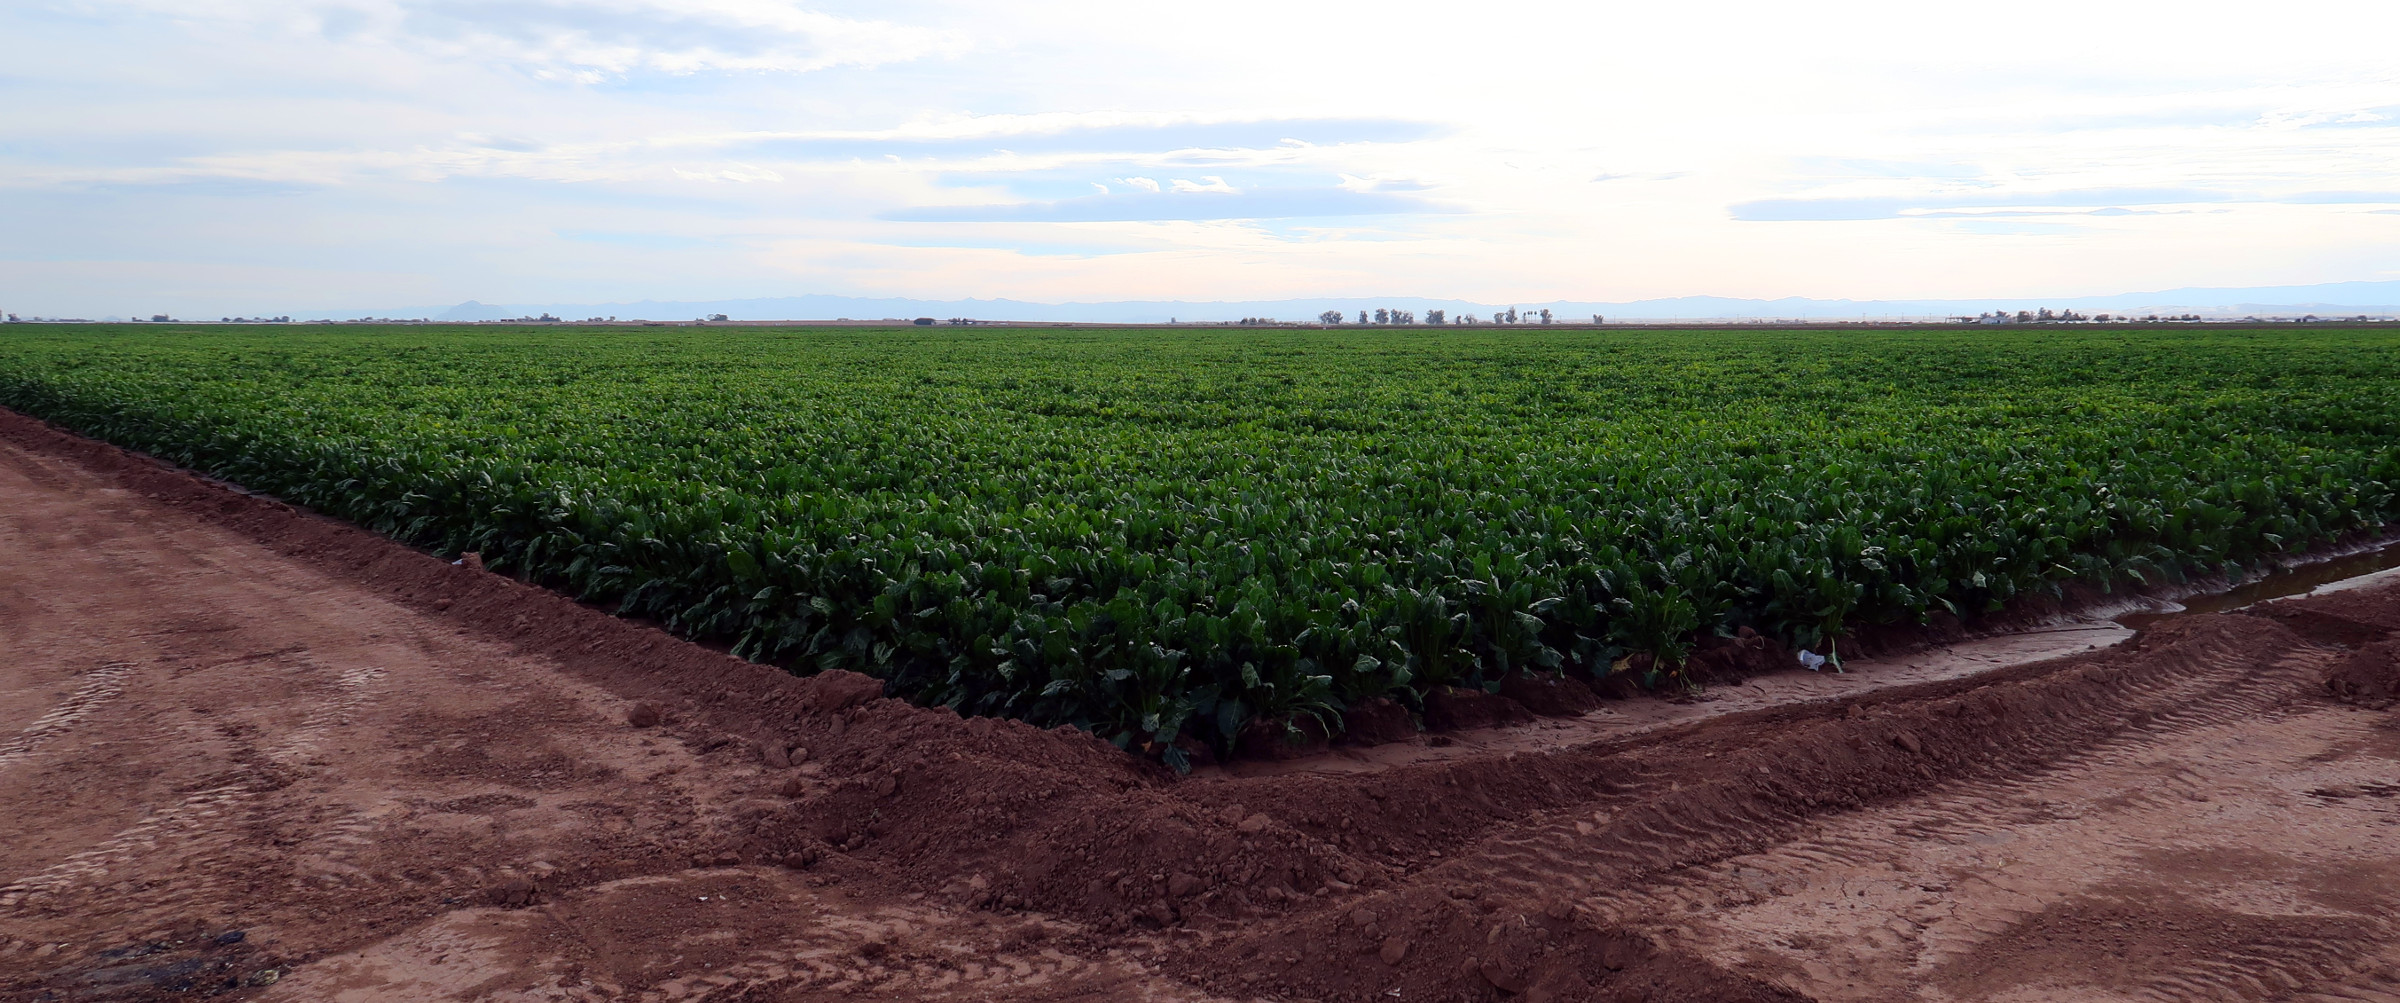 """Sugar Beet field in southern California in the desert near the Salton Sea. More than 90% of the Sugar Beets grown in the USA are GMO, genetically modified to be """"Round-up Ready."""""""